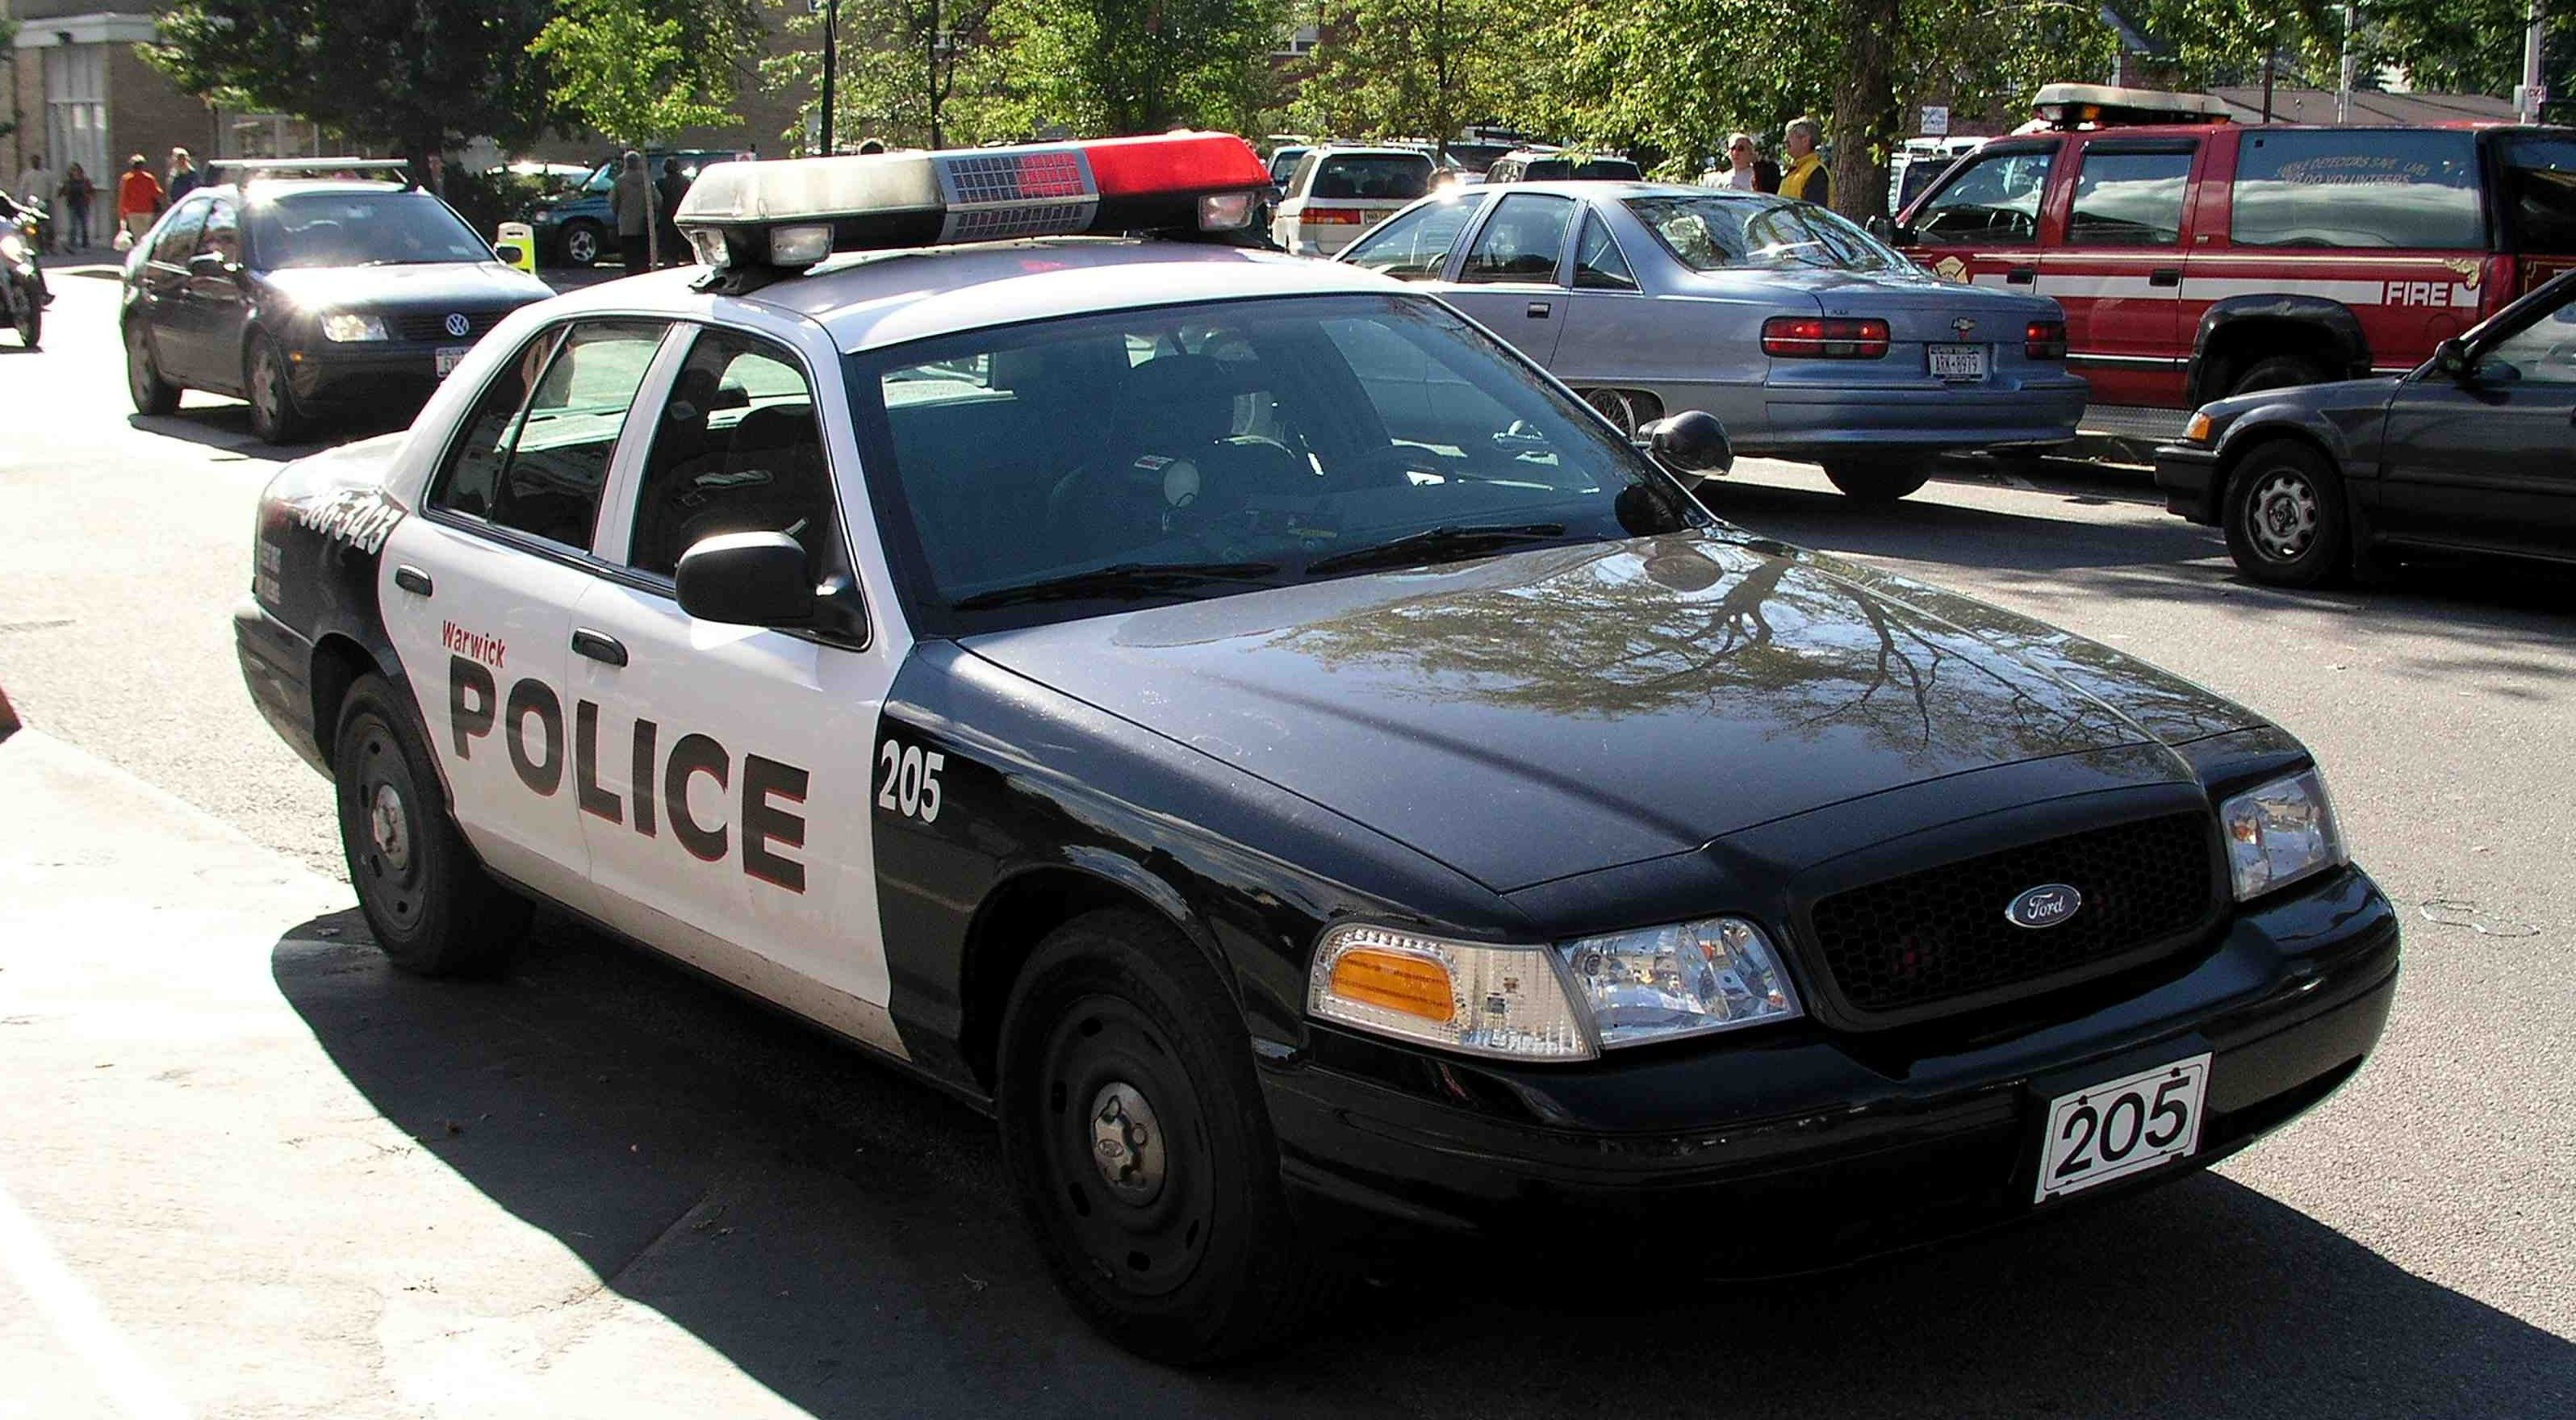 A Police Car Is A Ground Vehicle Used By Police To Assist With